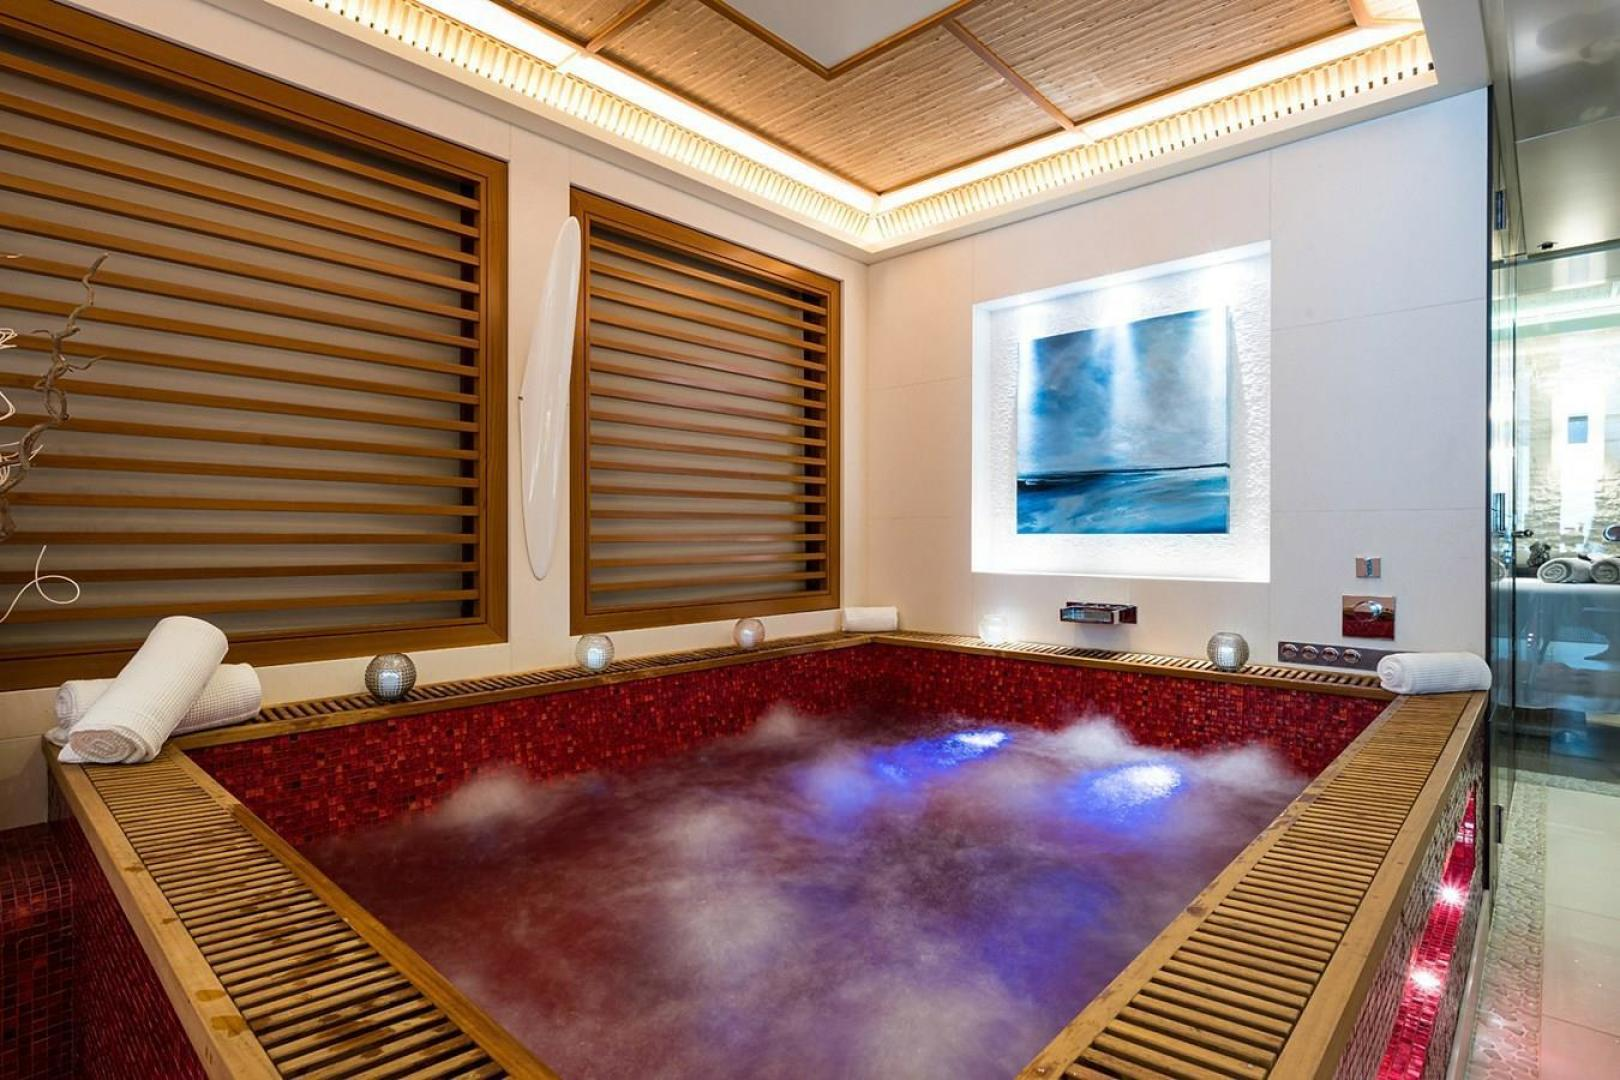 Turquoise 2012-QUANTUM OF SOLACE West Palm Beach-Florida-United States-Spa Hot Tub-1499665 | Thumbnail